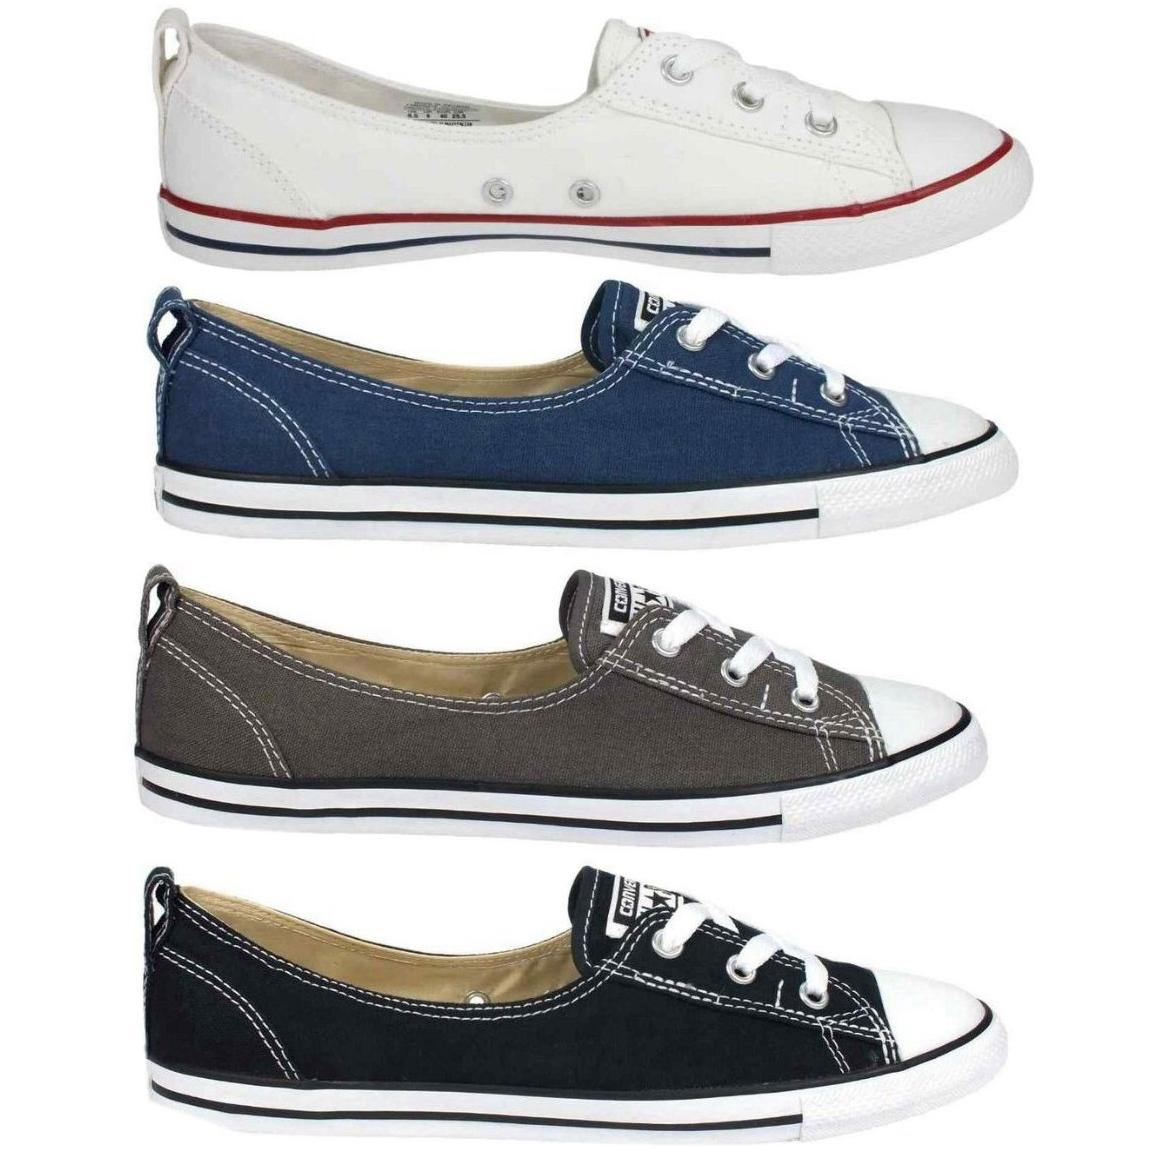 Details about Converse Chuck Taylor All Star Ballet Lace Shoes sneakers Ballet Flats Womens show original title